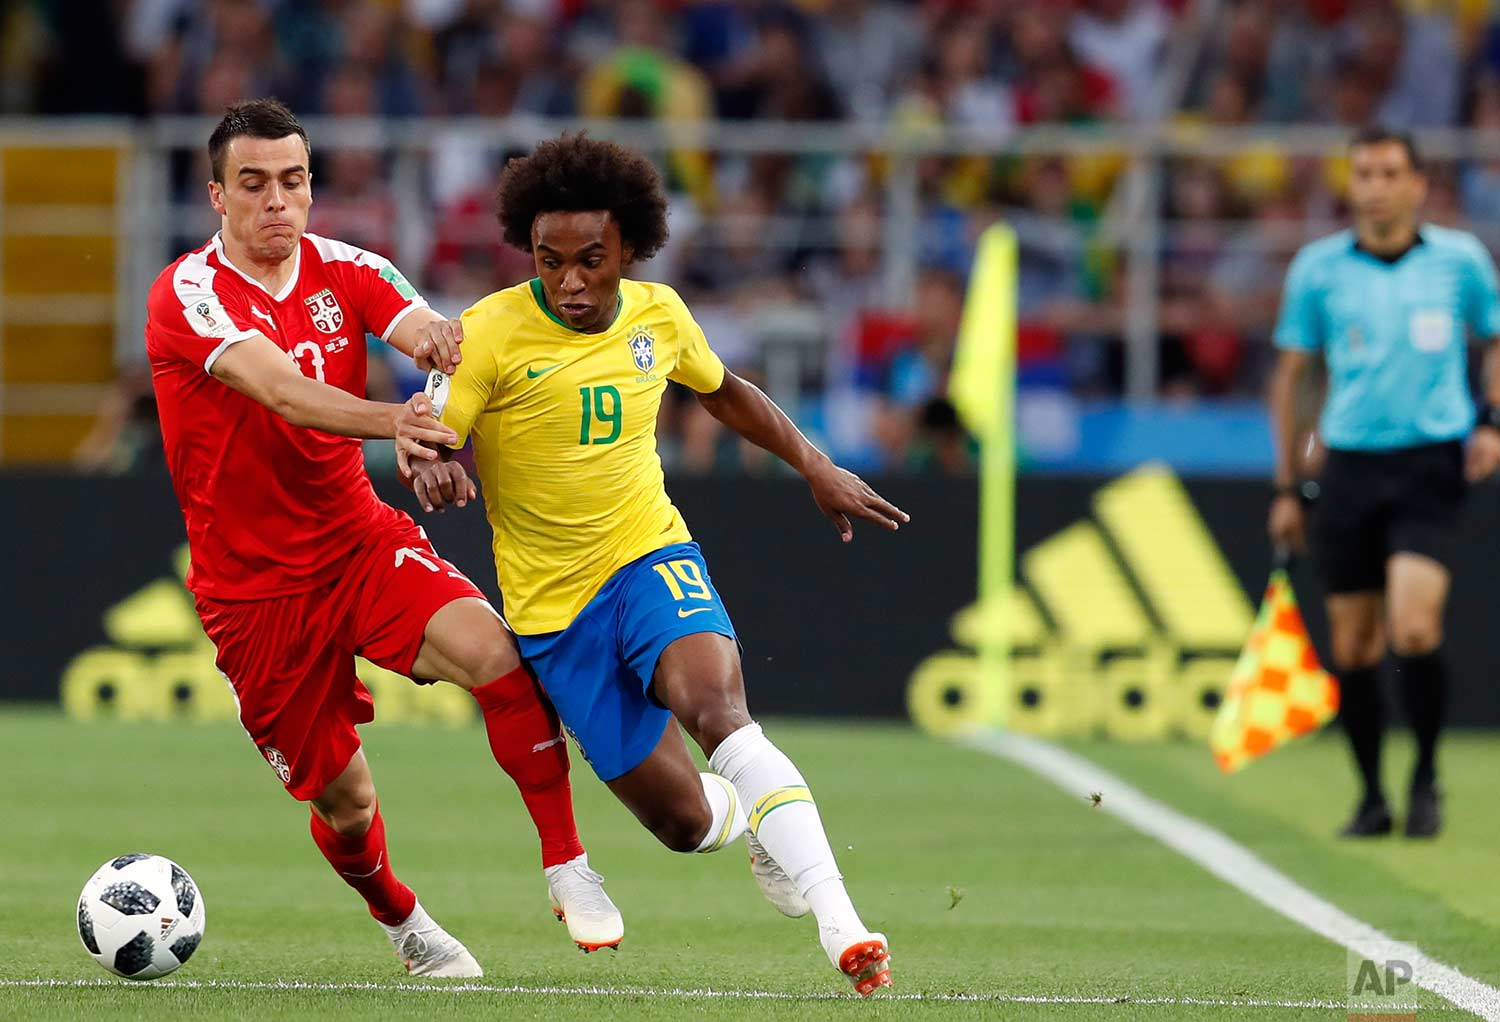 Brazil's Willian, right, is challenged by Serbia's Filip Kostic during the group E match between Serbia and Brazil, at the 2018 soccer World Cup in the Spartak Stadium in Moscow, Russia, Wednesday, June 27, 2018. (AP Photo/Rebecca Blackwell)